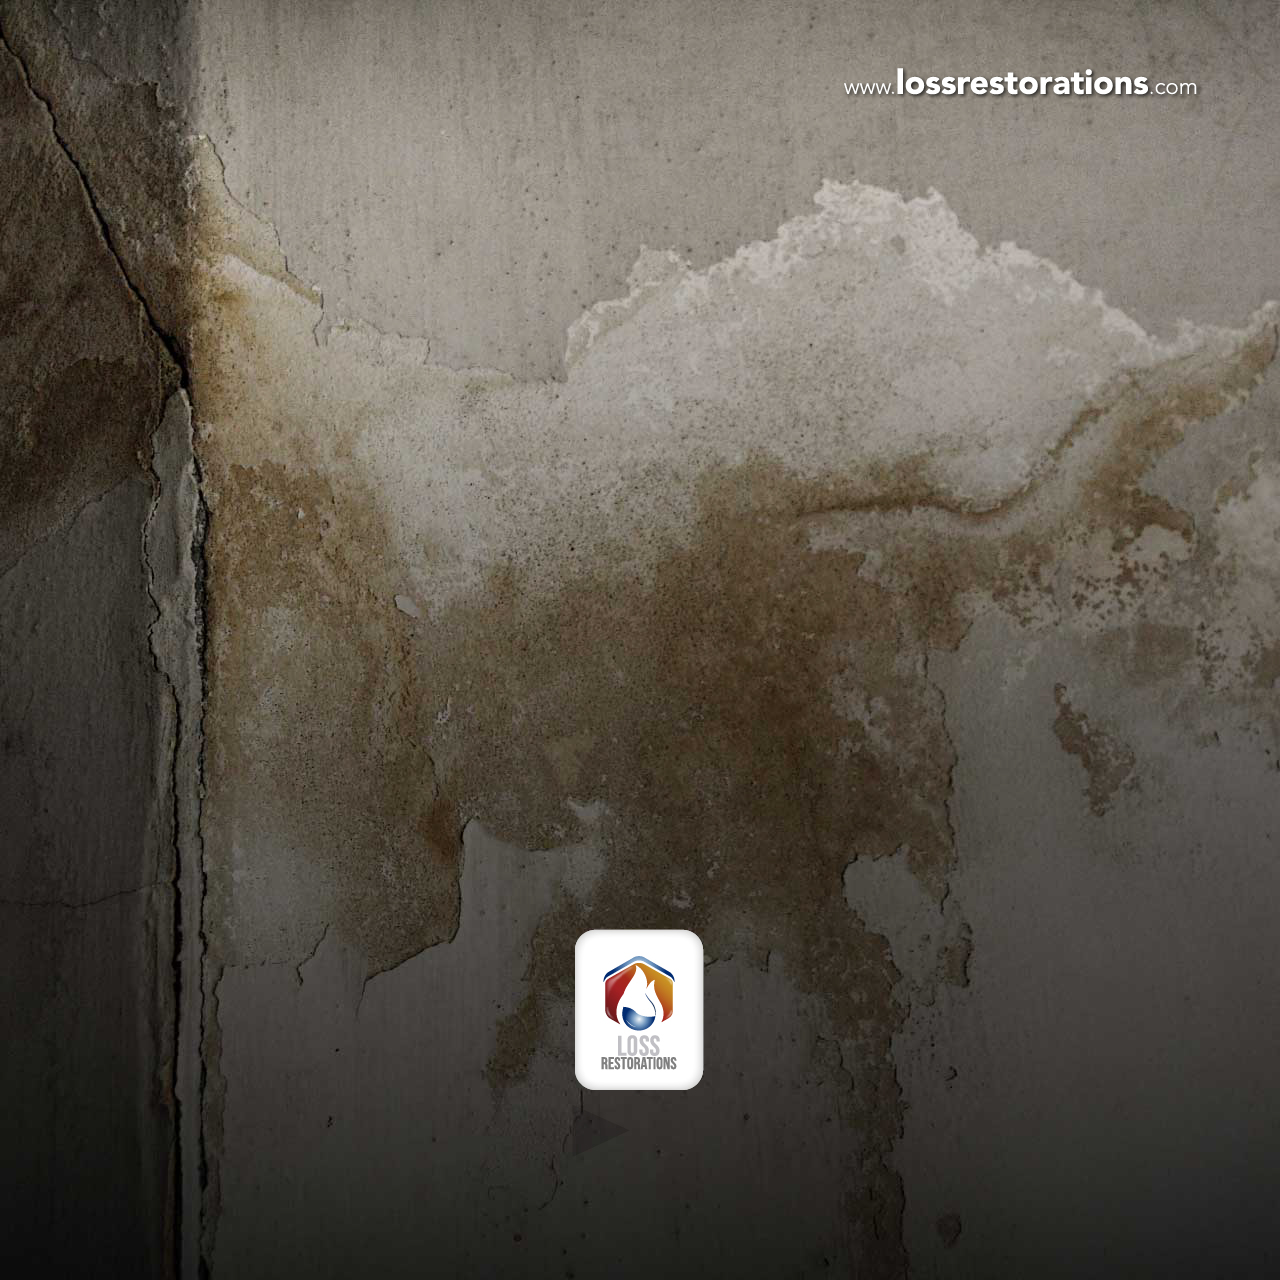 Treatment and prevention of moisture problems in homes and businesses